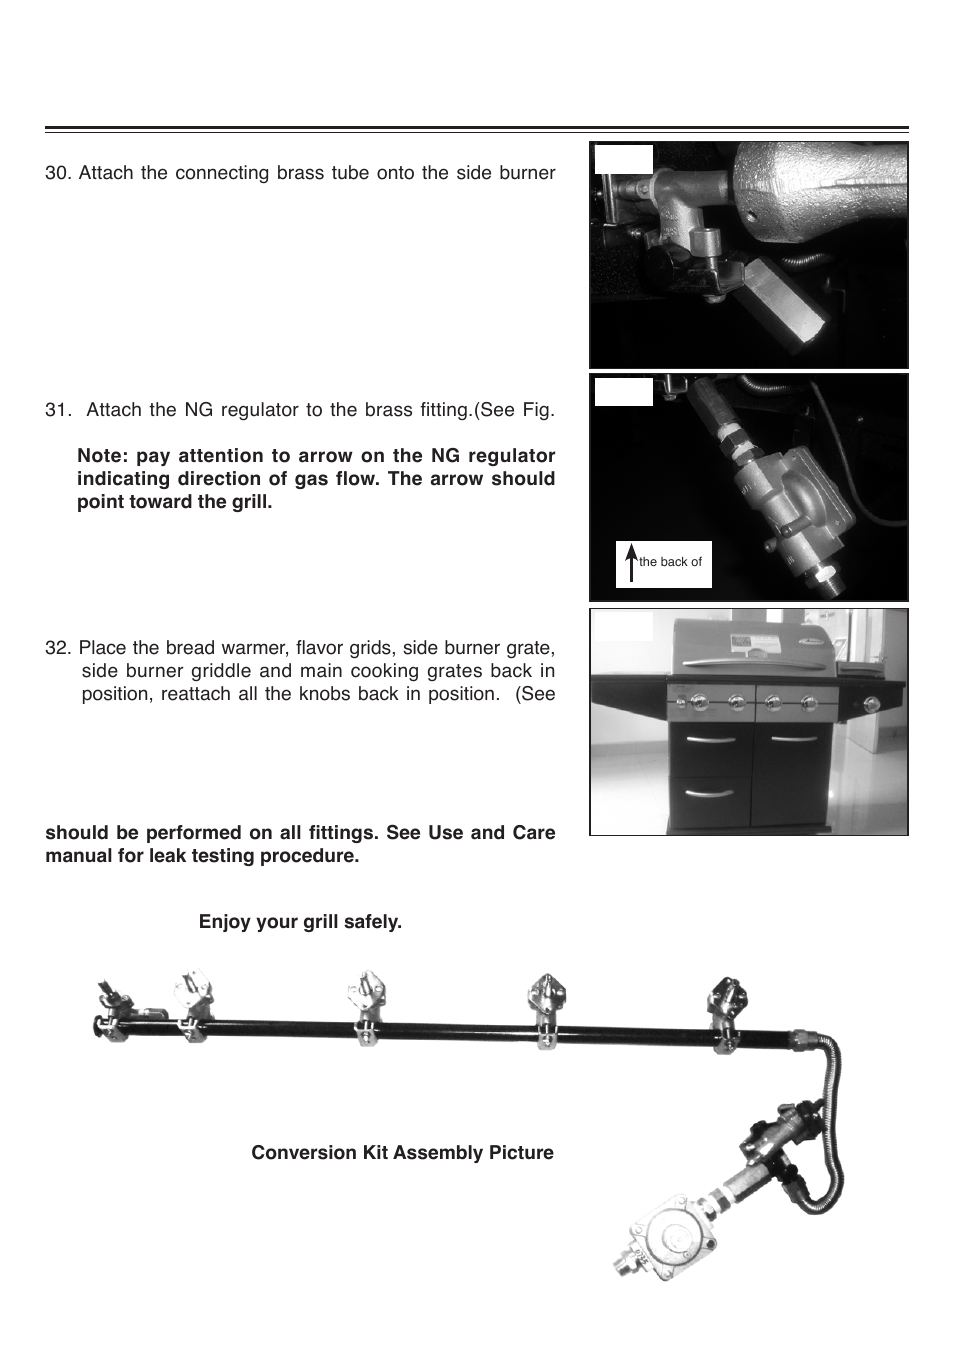 Am33 Lp P Natural Gas Conversion Instructions Sure Heat 2008 Amana Stove Wiring Diagram Kit User Manual Page 8